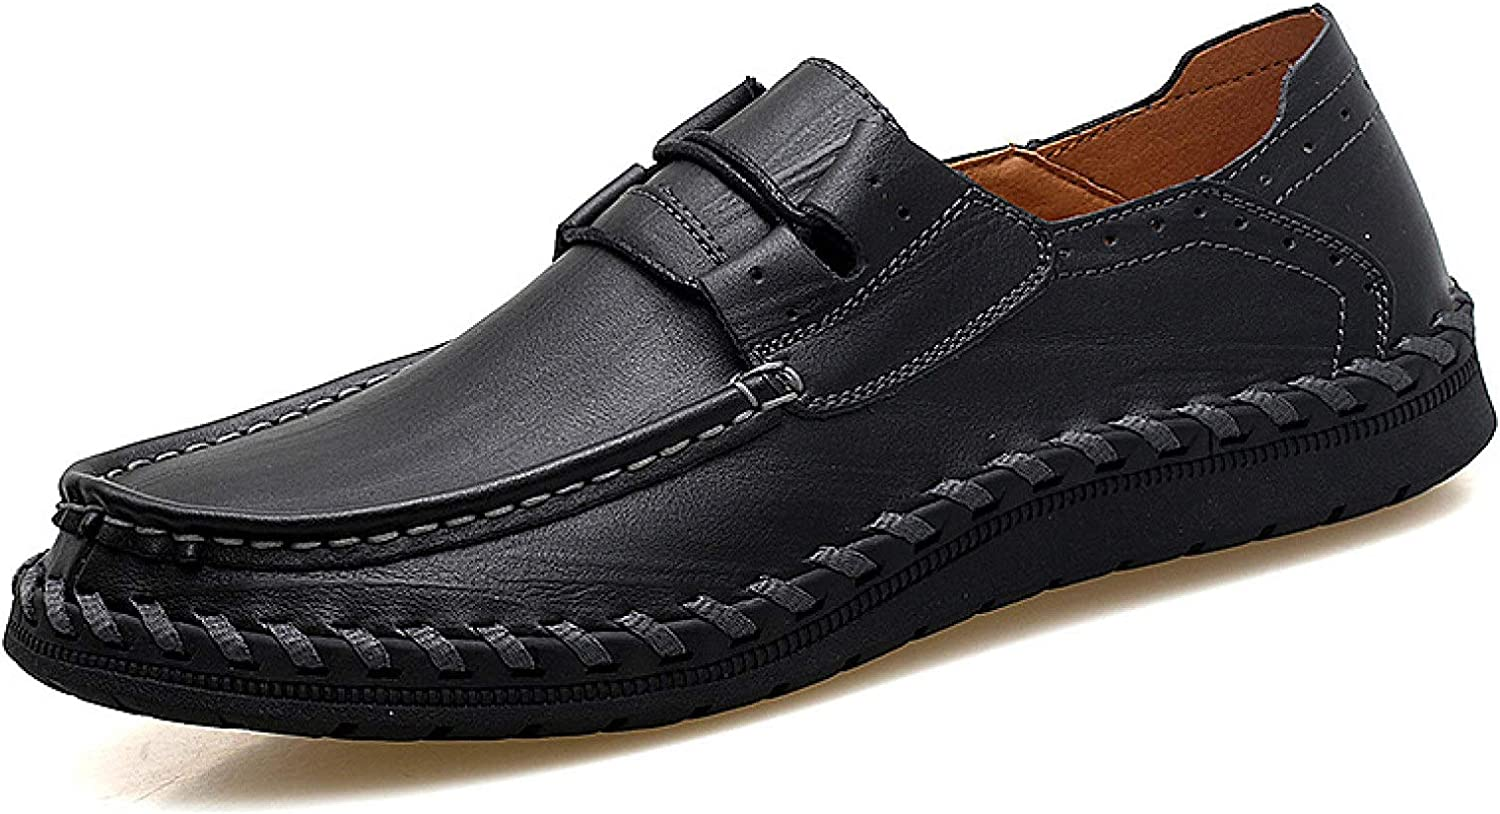 OTOSU Loafers for Men Comfortable Shoes Walking Business Penny Loafers Lightweight Durable